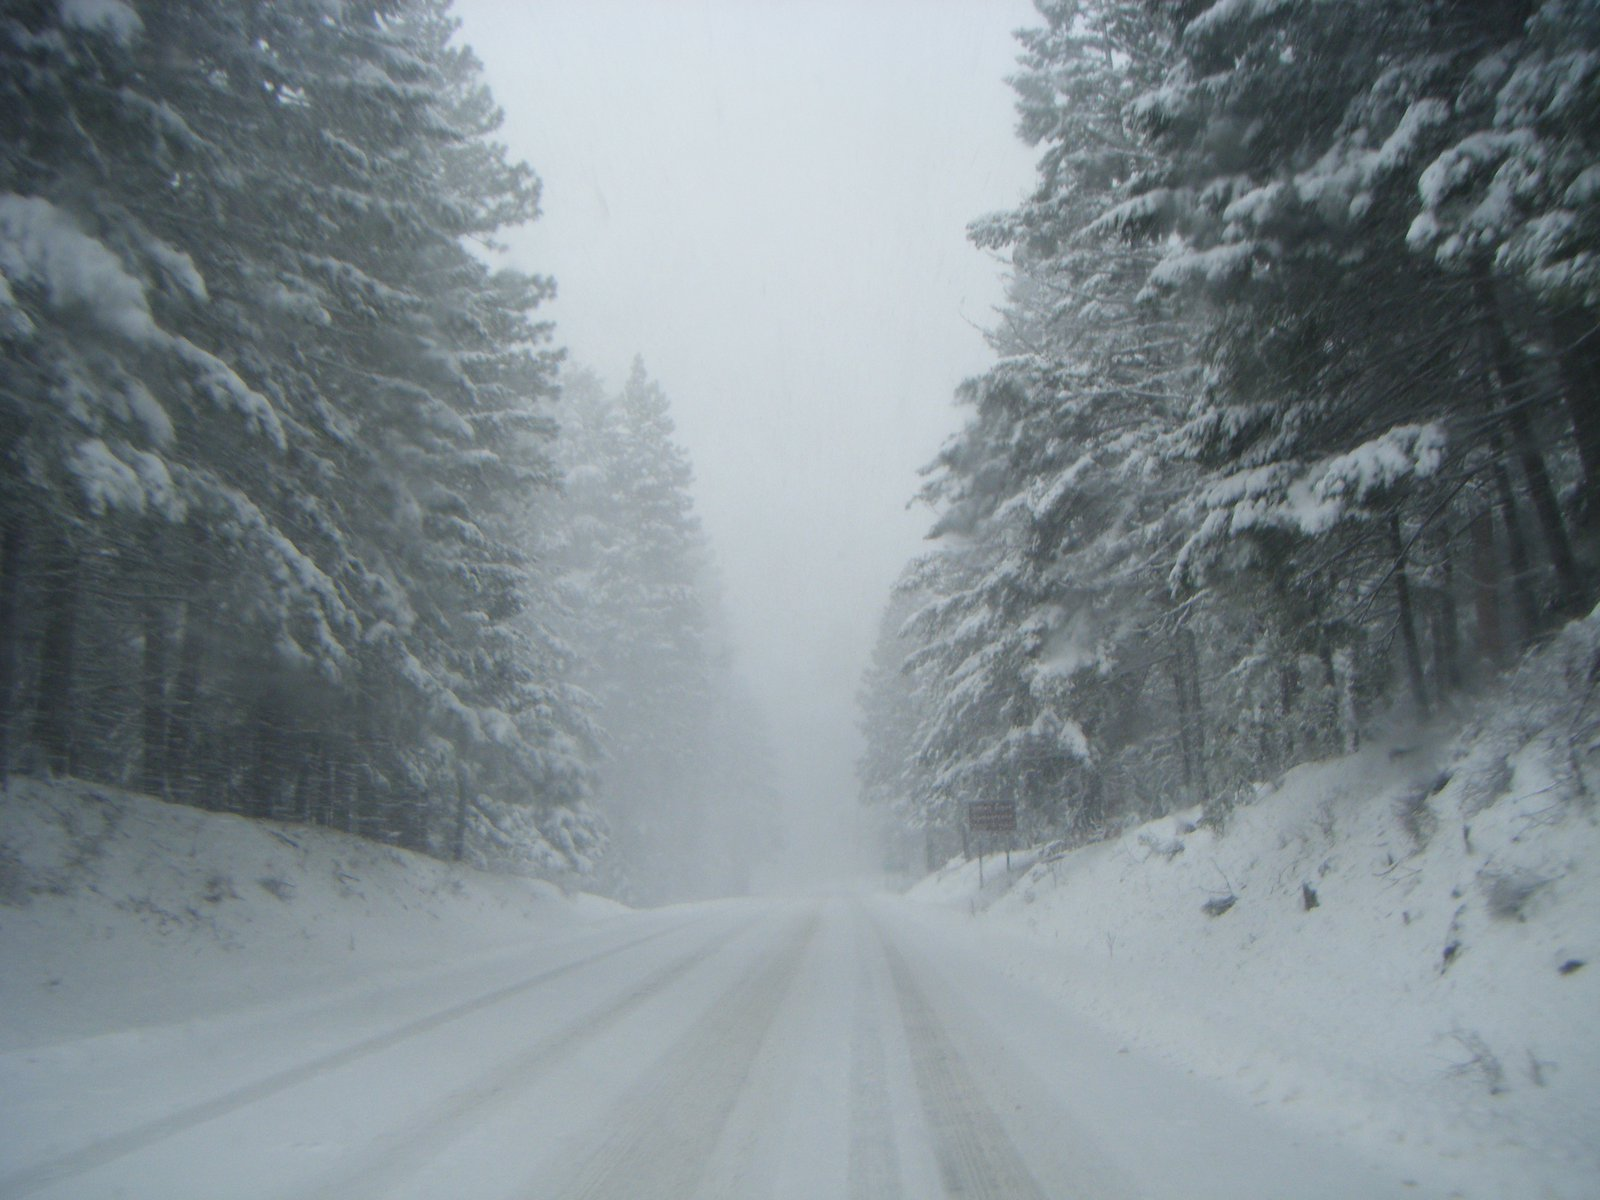 Drive to White